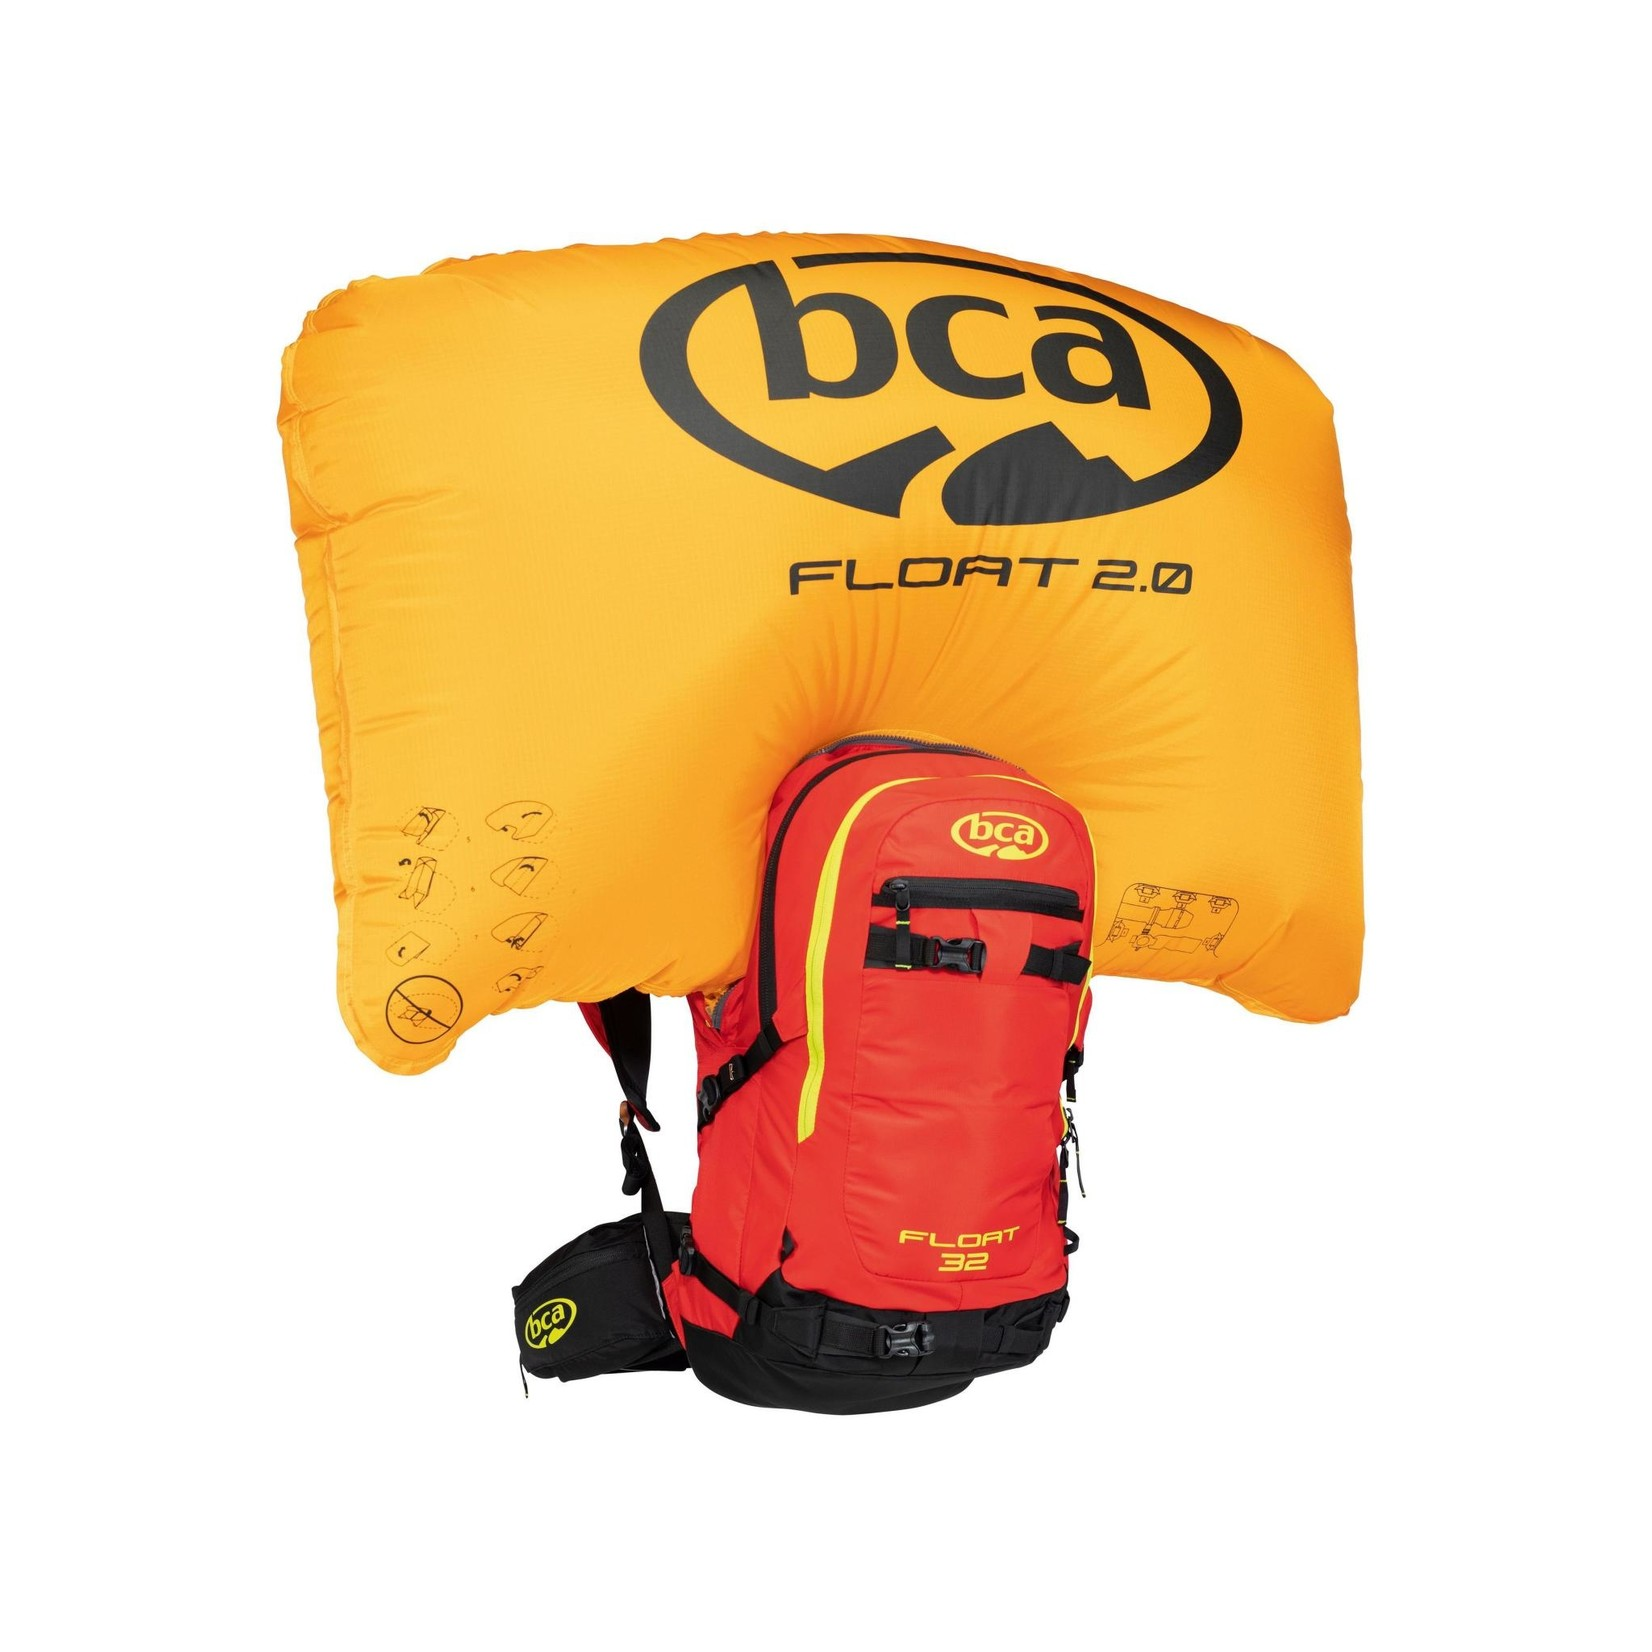 Backcountry Access Sac gonflable à avalanche BCA Float 32